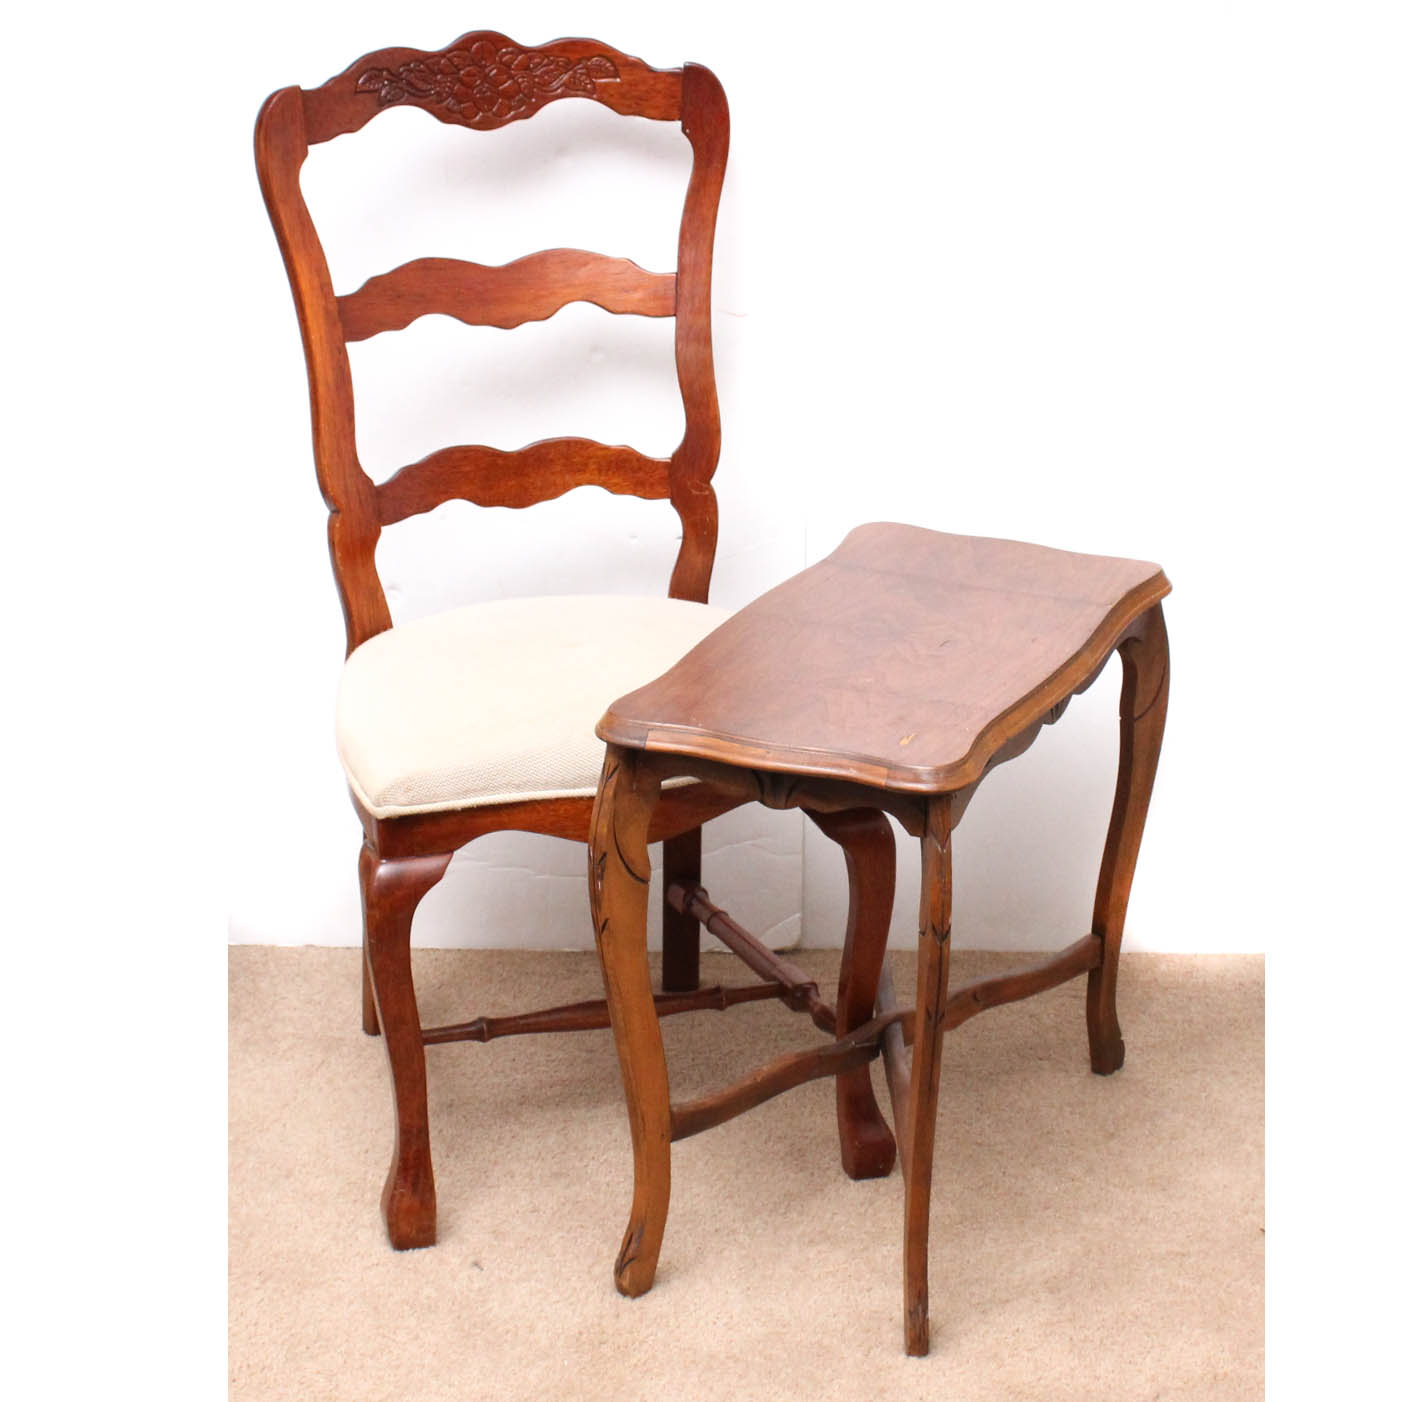 vintage wooden chairs toddler table and set chair accent ebth